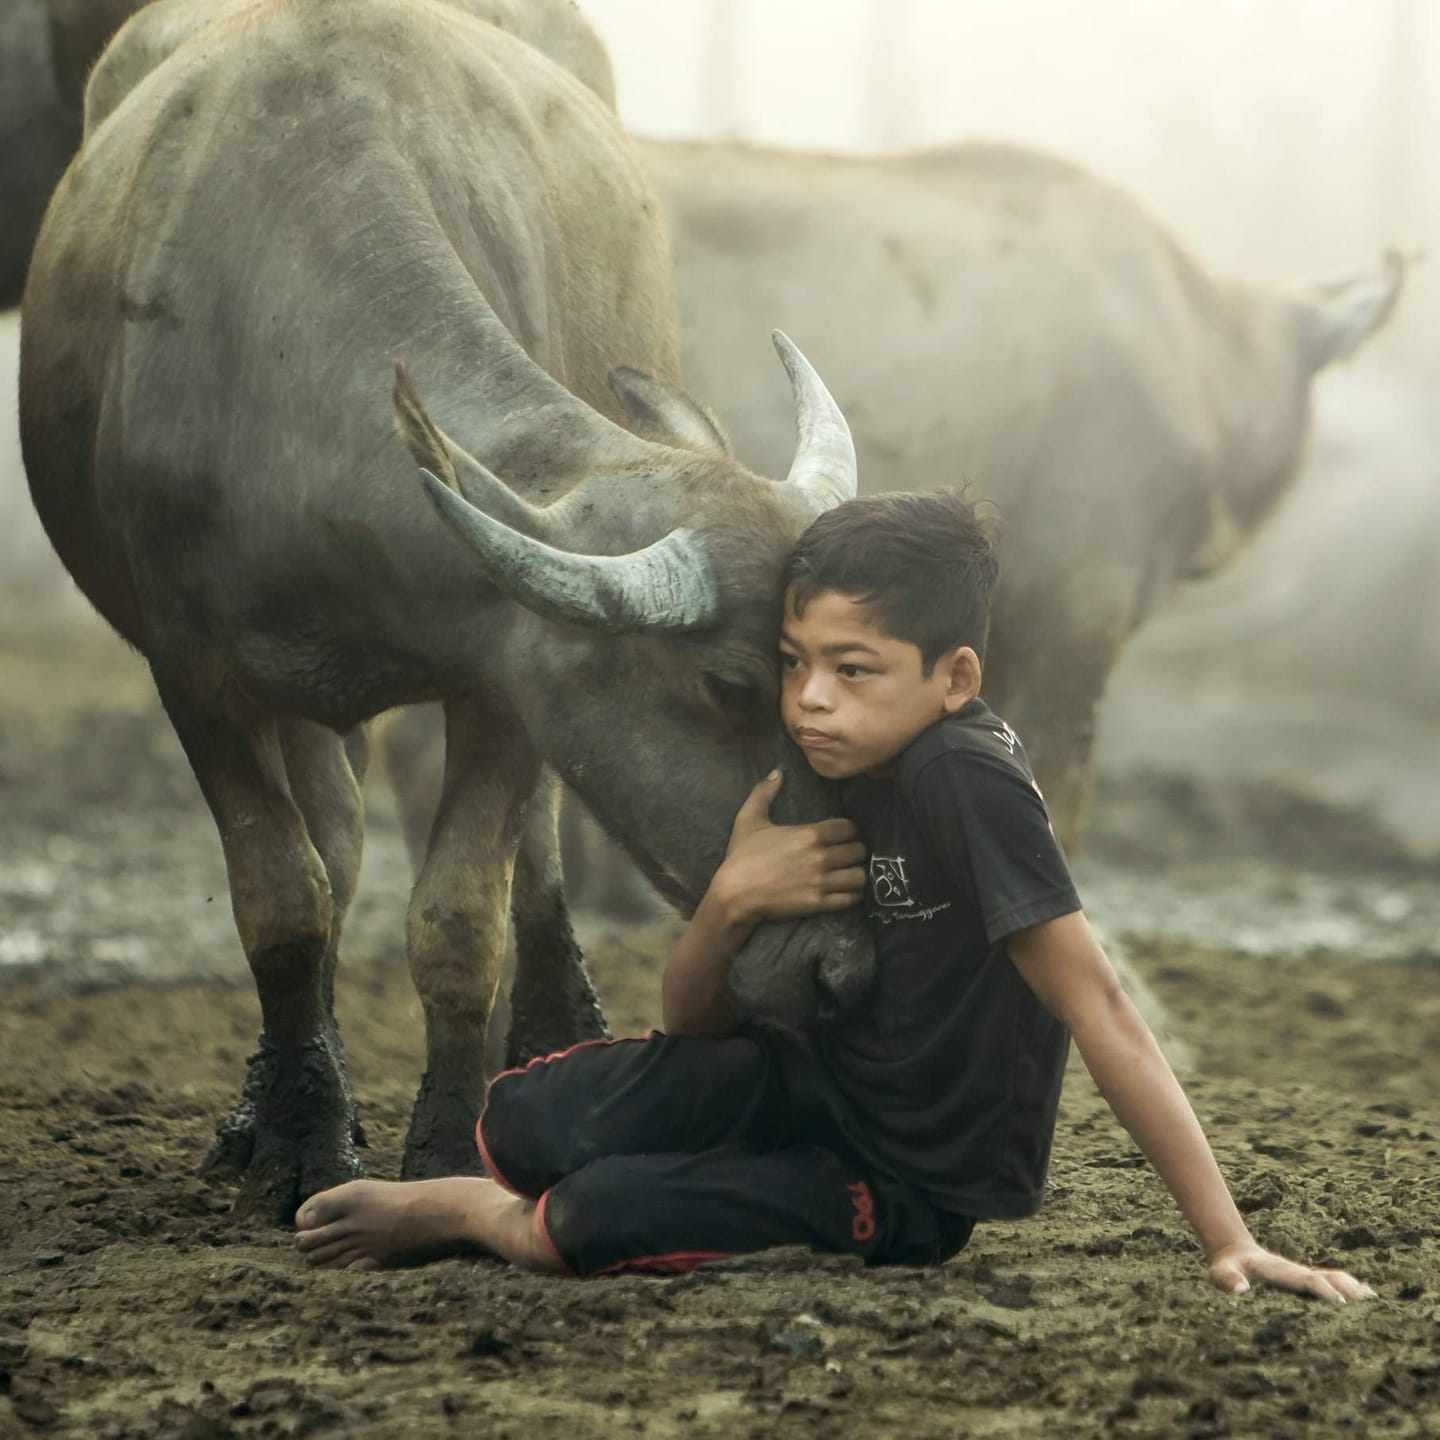 See how genuine his love for buffaloes is!